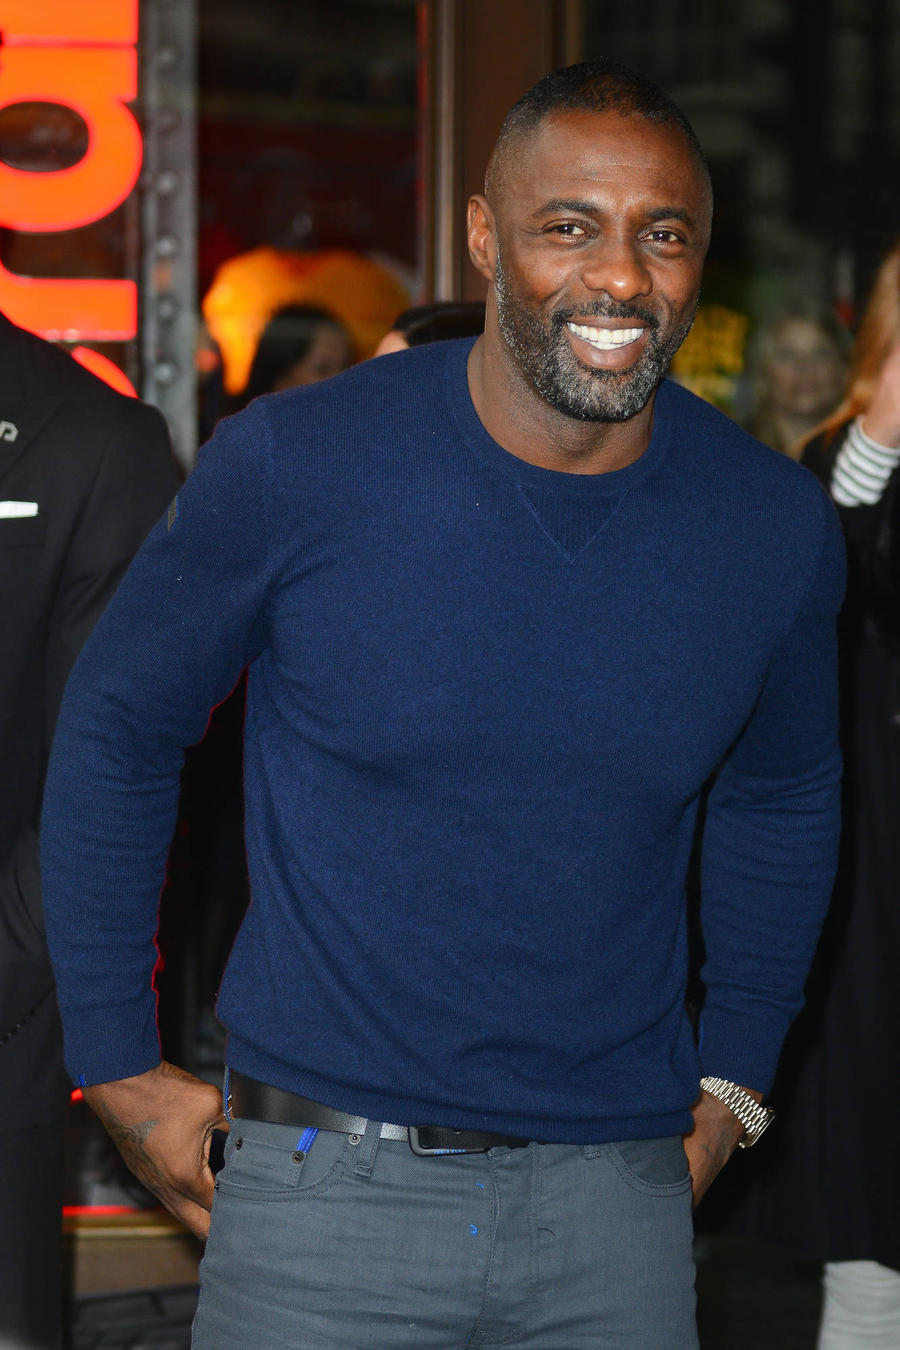 Idris Elba Replaces Charlie Hunnam In Romantic Drama